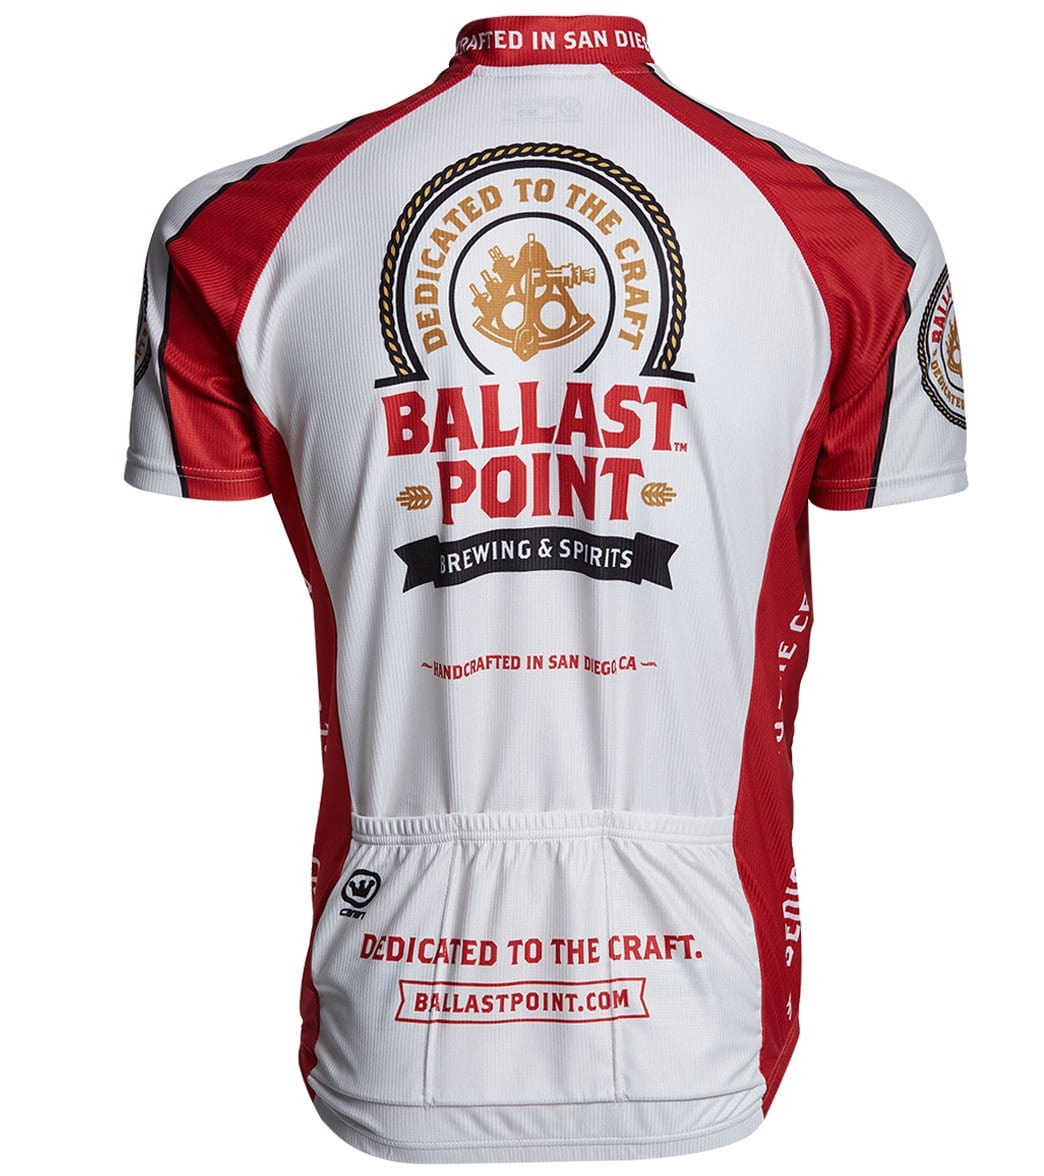 Canari Men s Ballast Point Brewing Cycling Jersey at SwimOutlet.com ... 9cd92fd1e